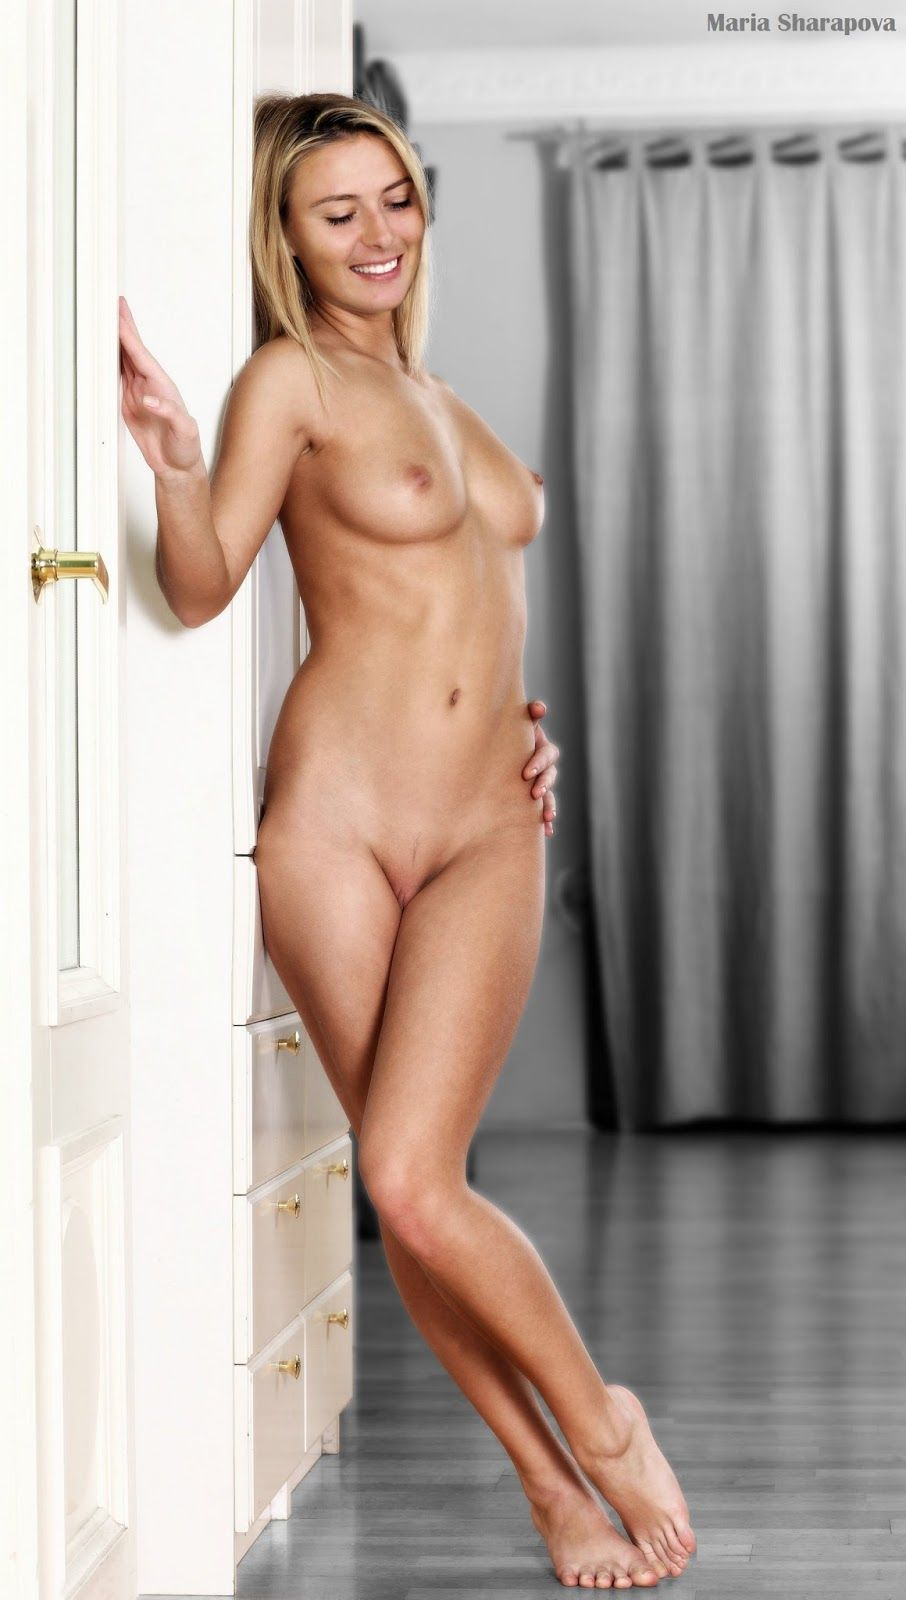 Nude photo of maria sharapova celebrities full